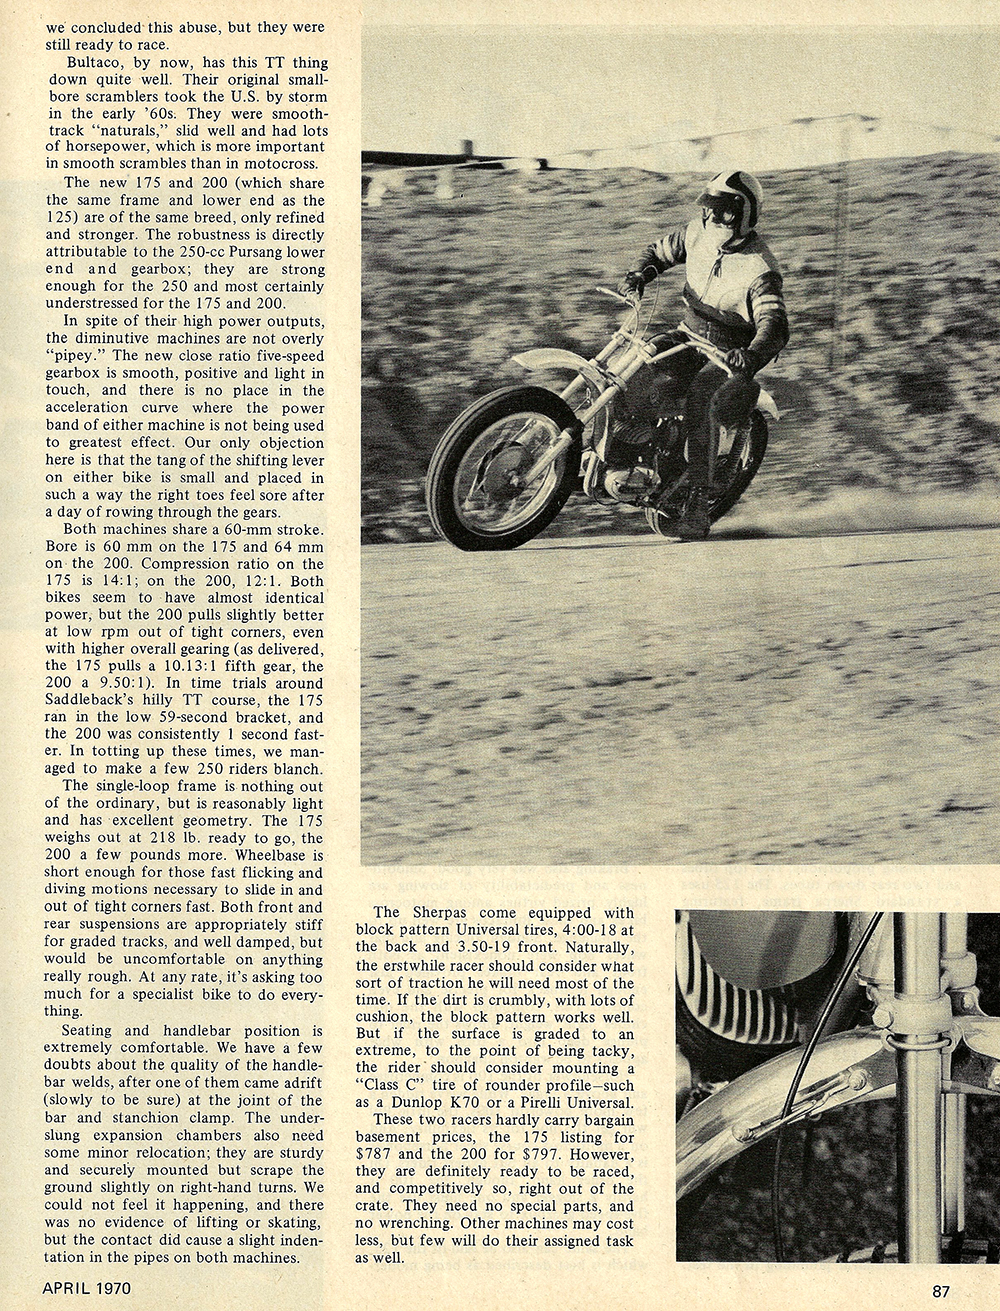 1970 Bultaco Sherpa 175 and 200 road test 02.jpg